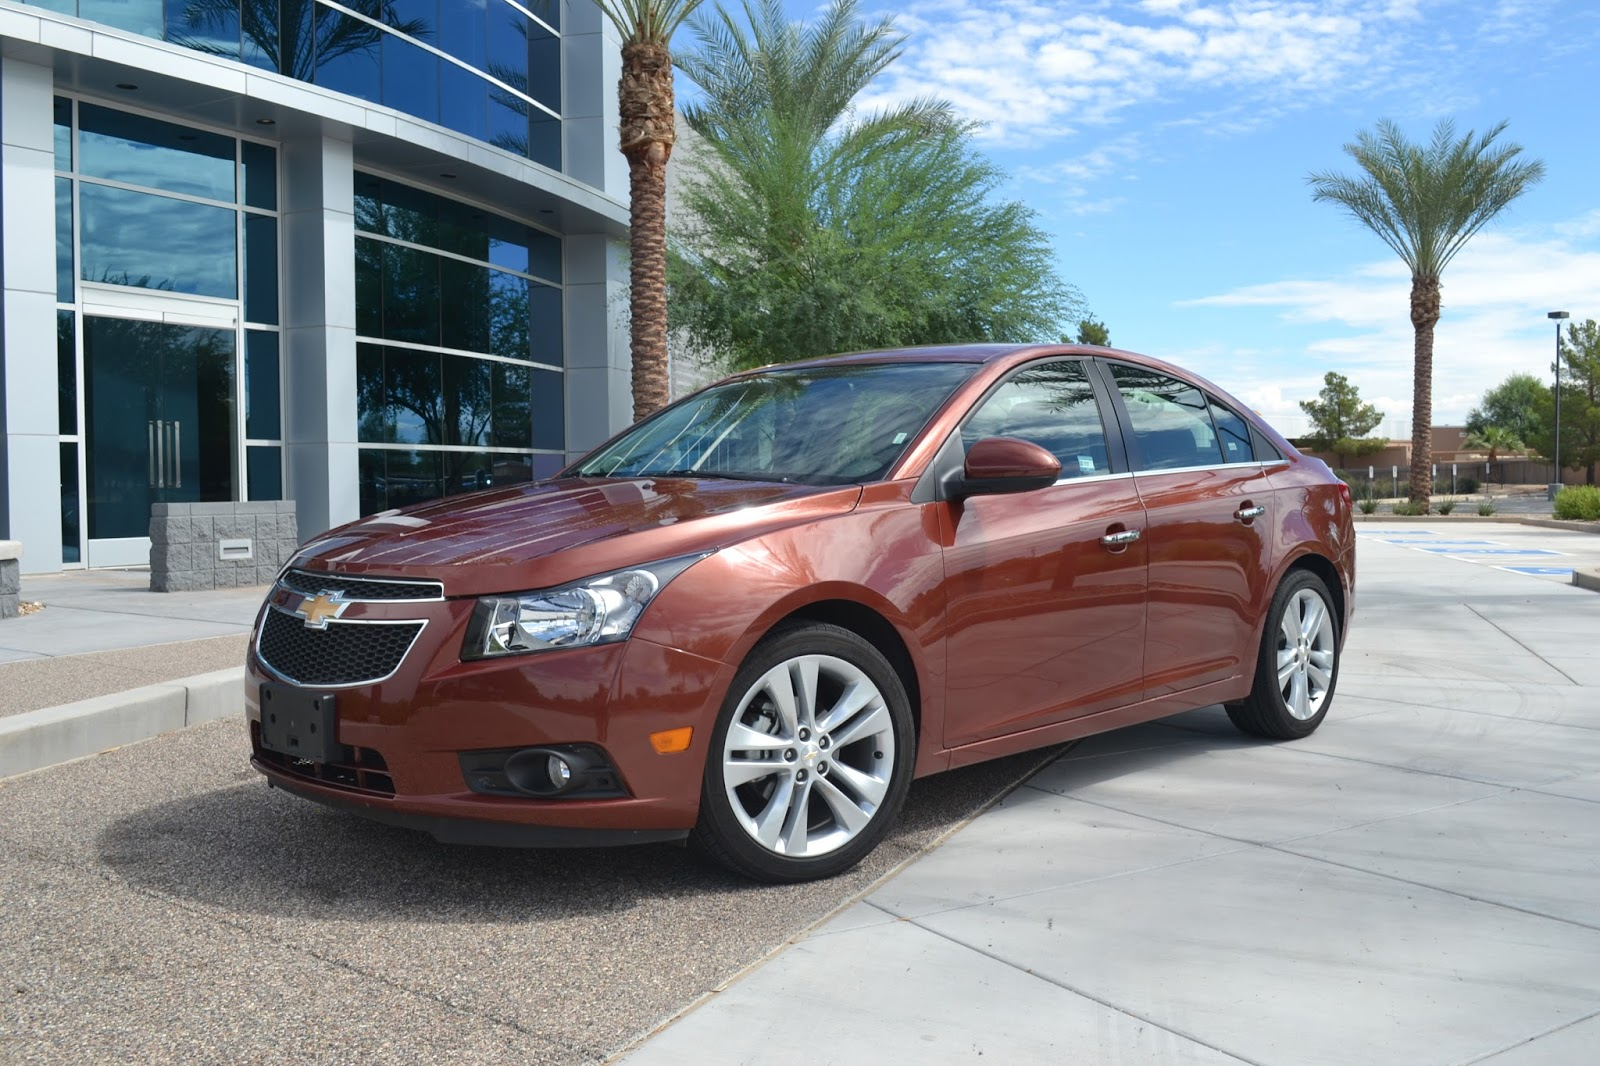 Cruze 2013 chevy cruze ltz for sale : 2013 Chevrolet Cruze LTZ | 6th Gear Motor Reviews